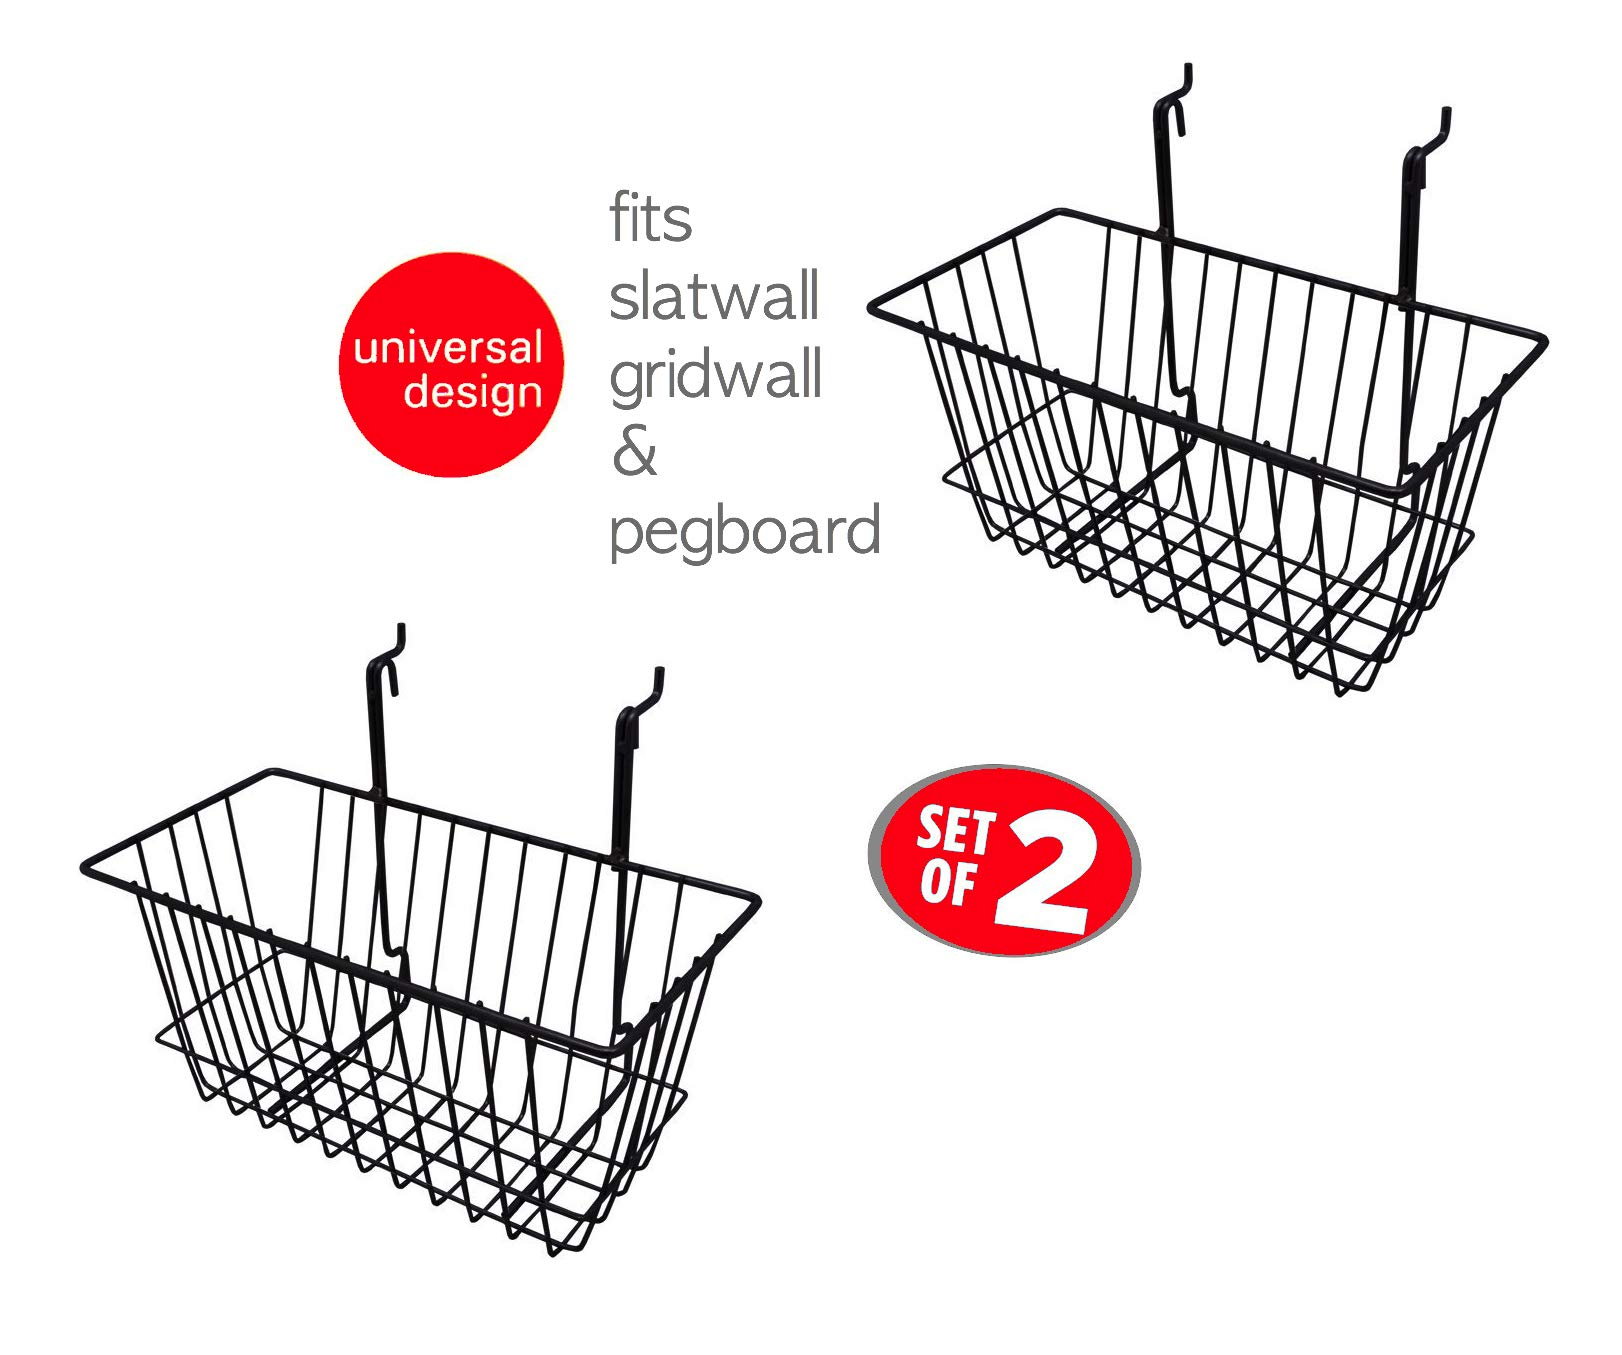 Only Hangers Small Wire Storage Baskets for Gridwall, Slatwall and Pegboard - Black Finish - Dimensions: 12'' x 6'' x 6'' Deep - Economically Sold in a Set of 2 Baskets